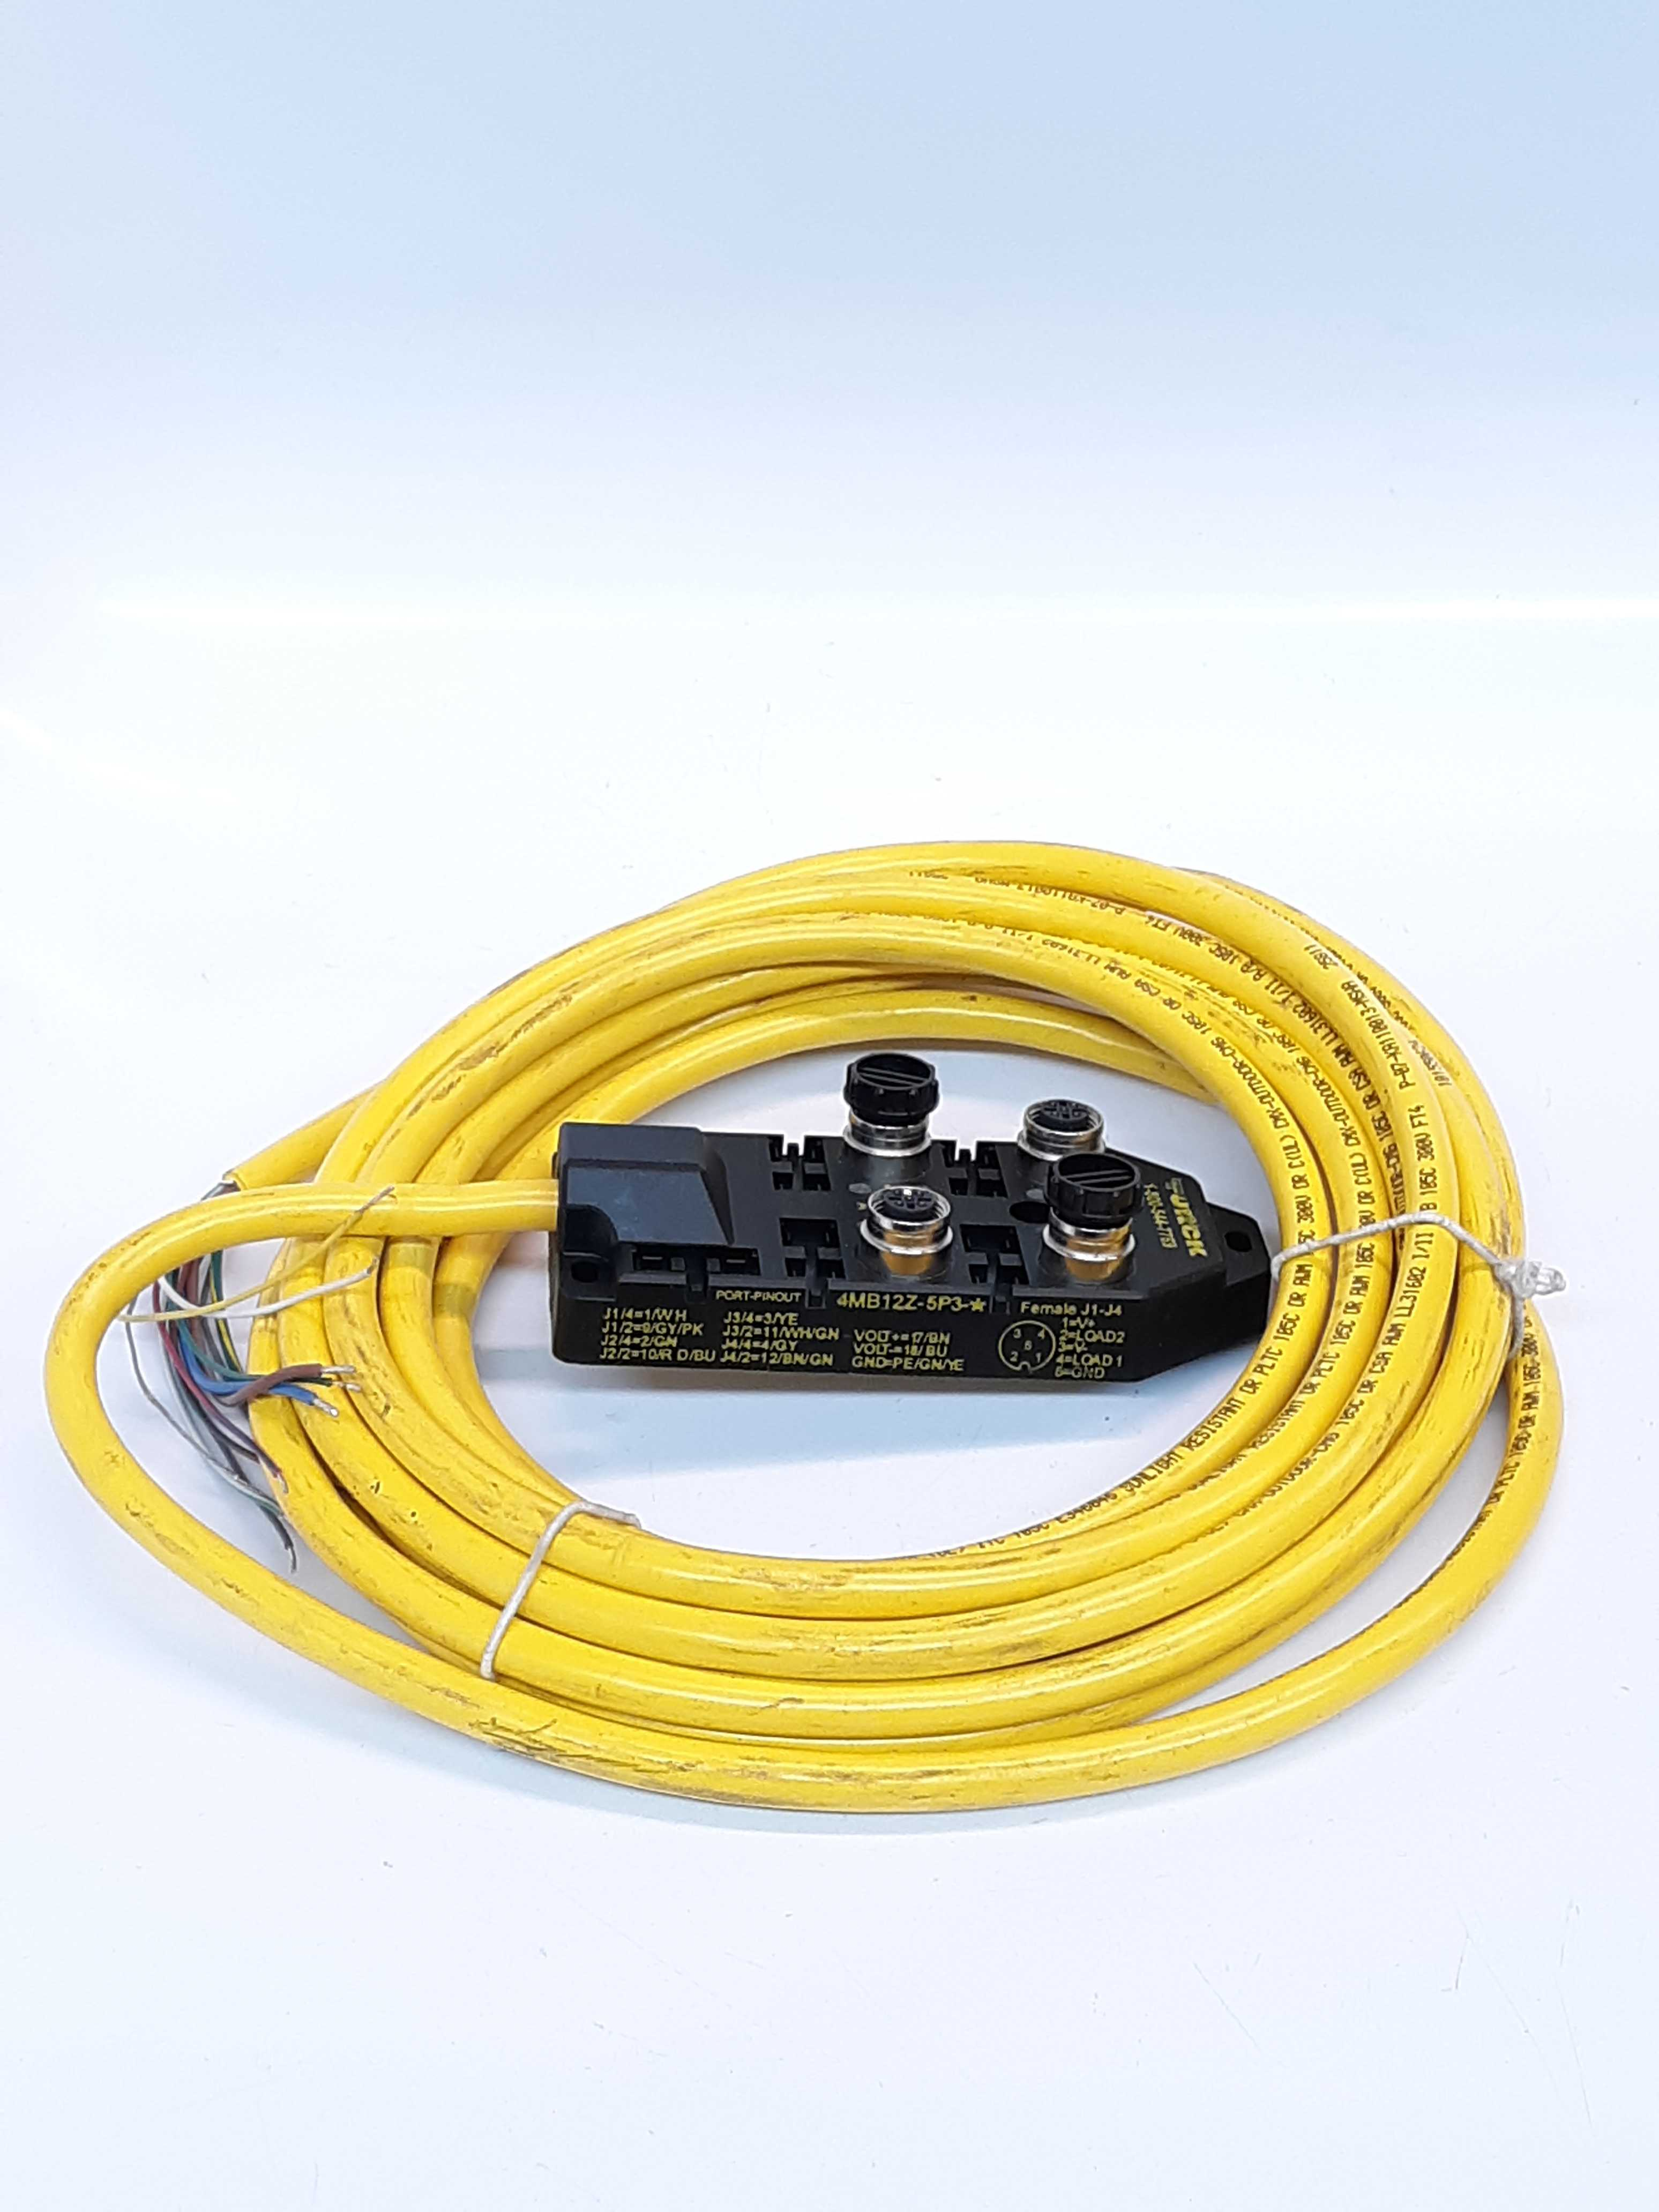 Turck 4MB12Z-5P3-5  Junction Box / Cable 4-Port Multi-Box Low Profile